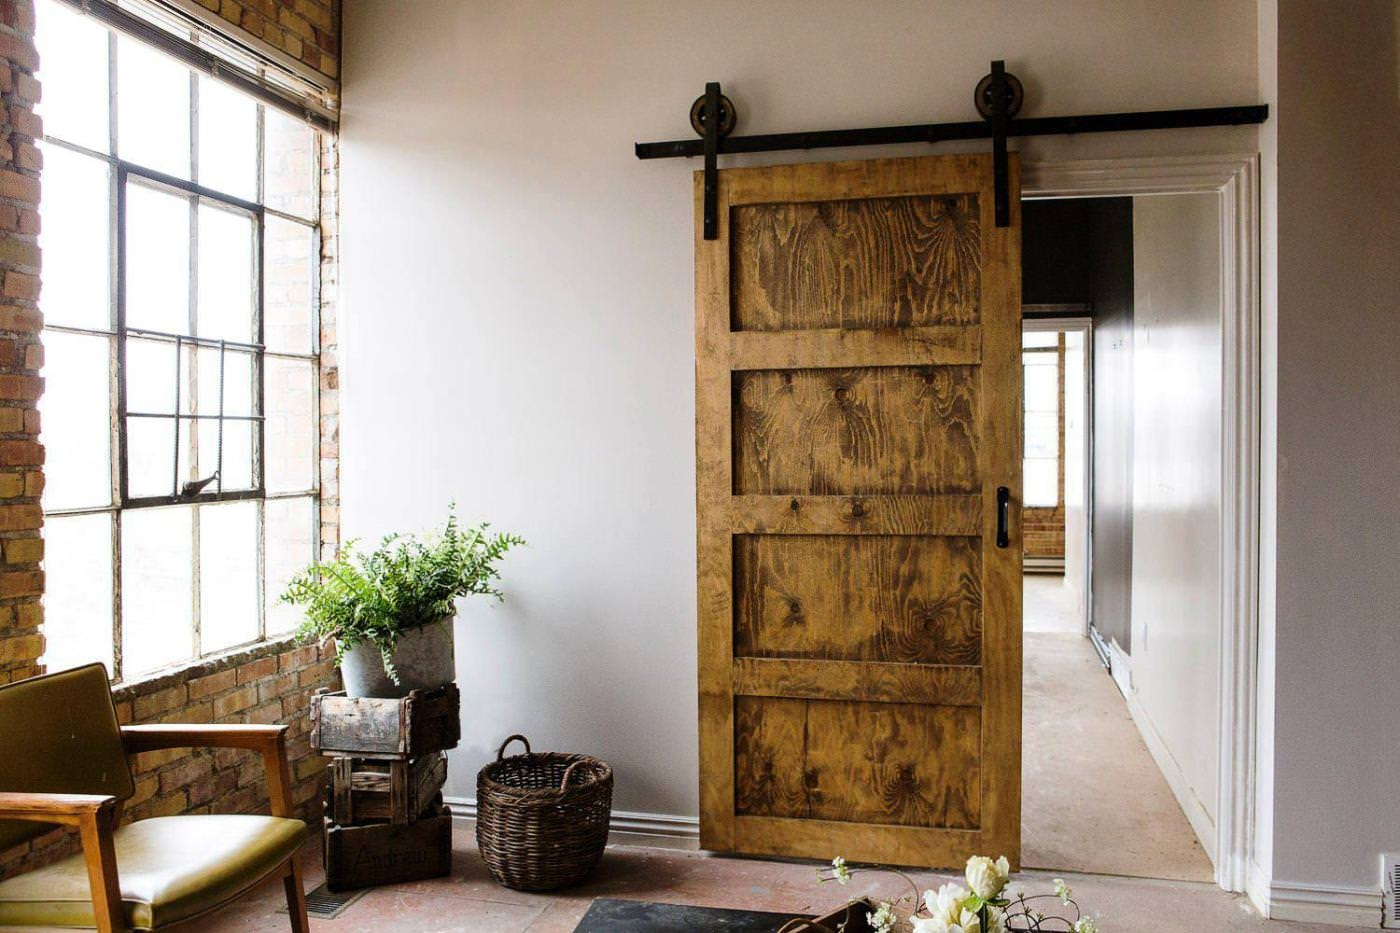 Sliding Carriage Doors Interiorinside sliding doors